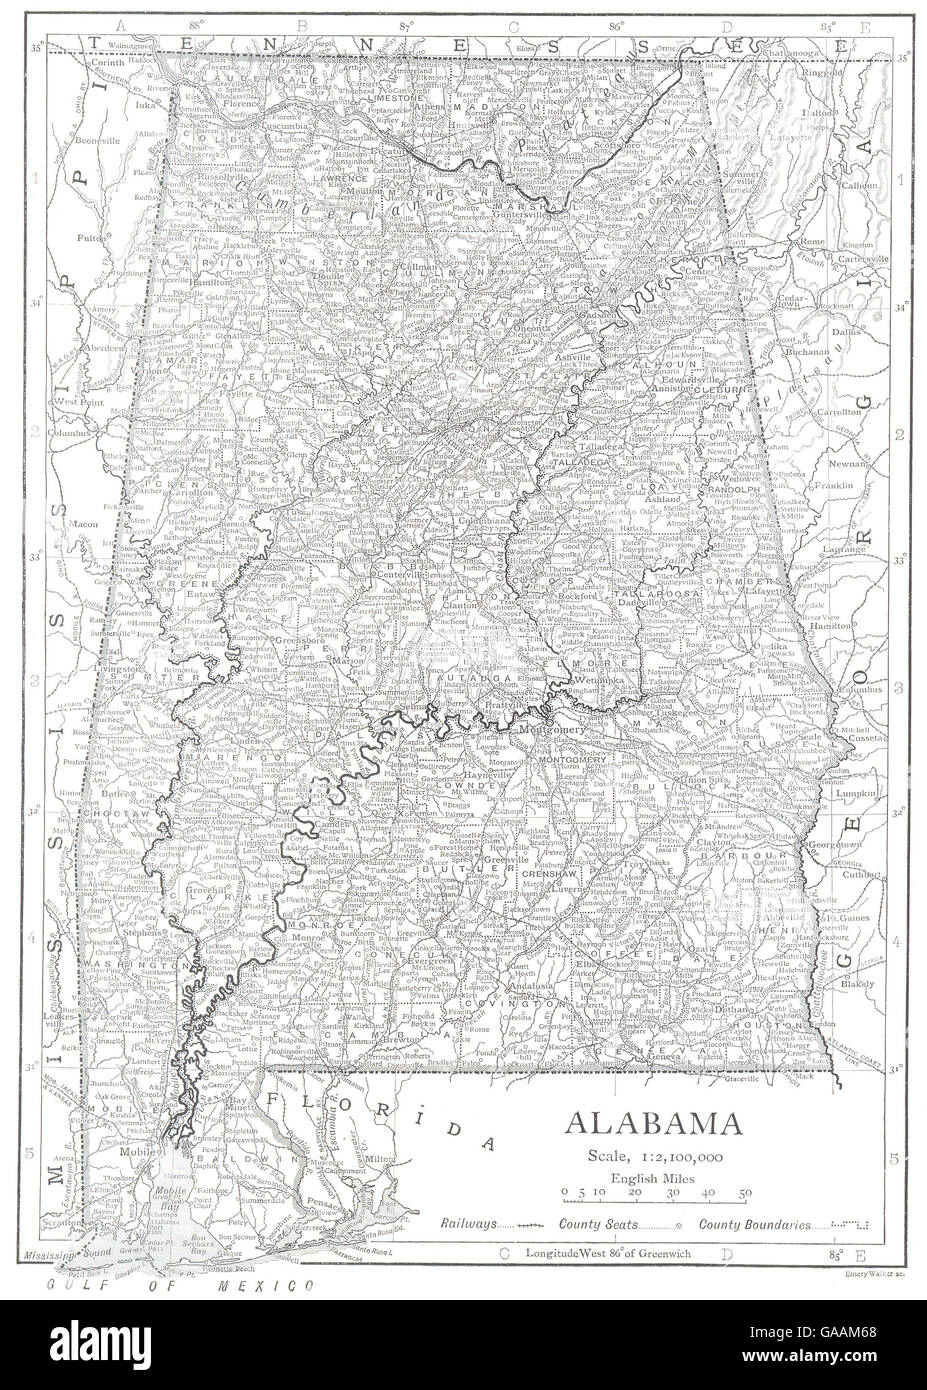 Alabama Alabama State Map Showing Counties 1910 Stock Photo